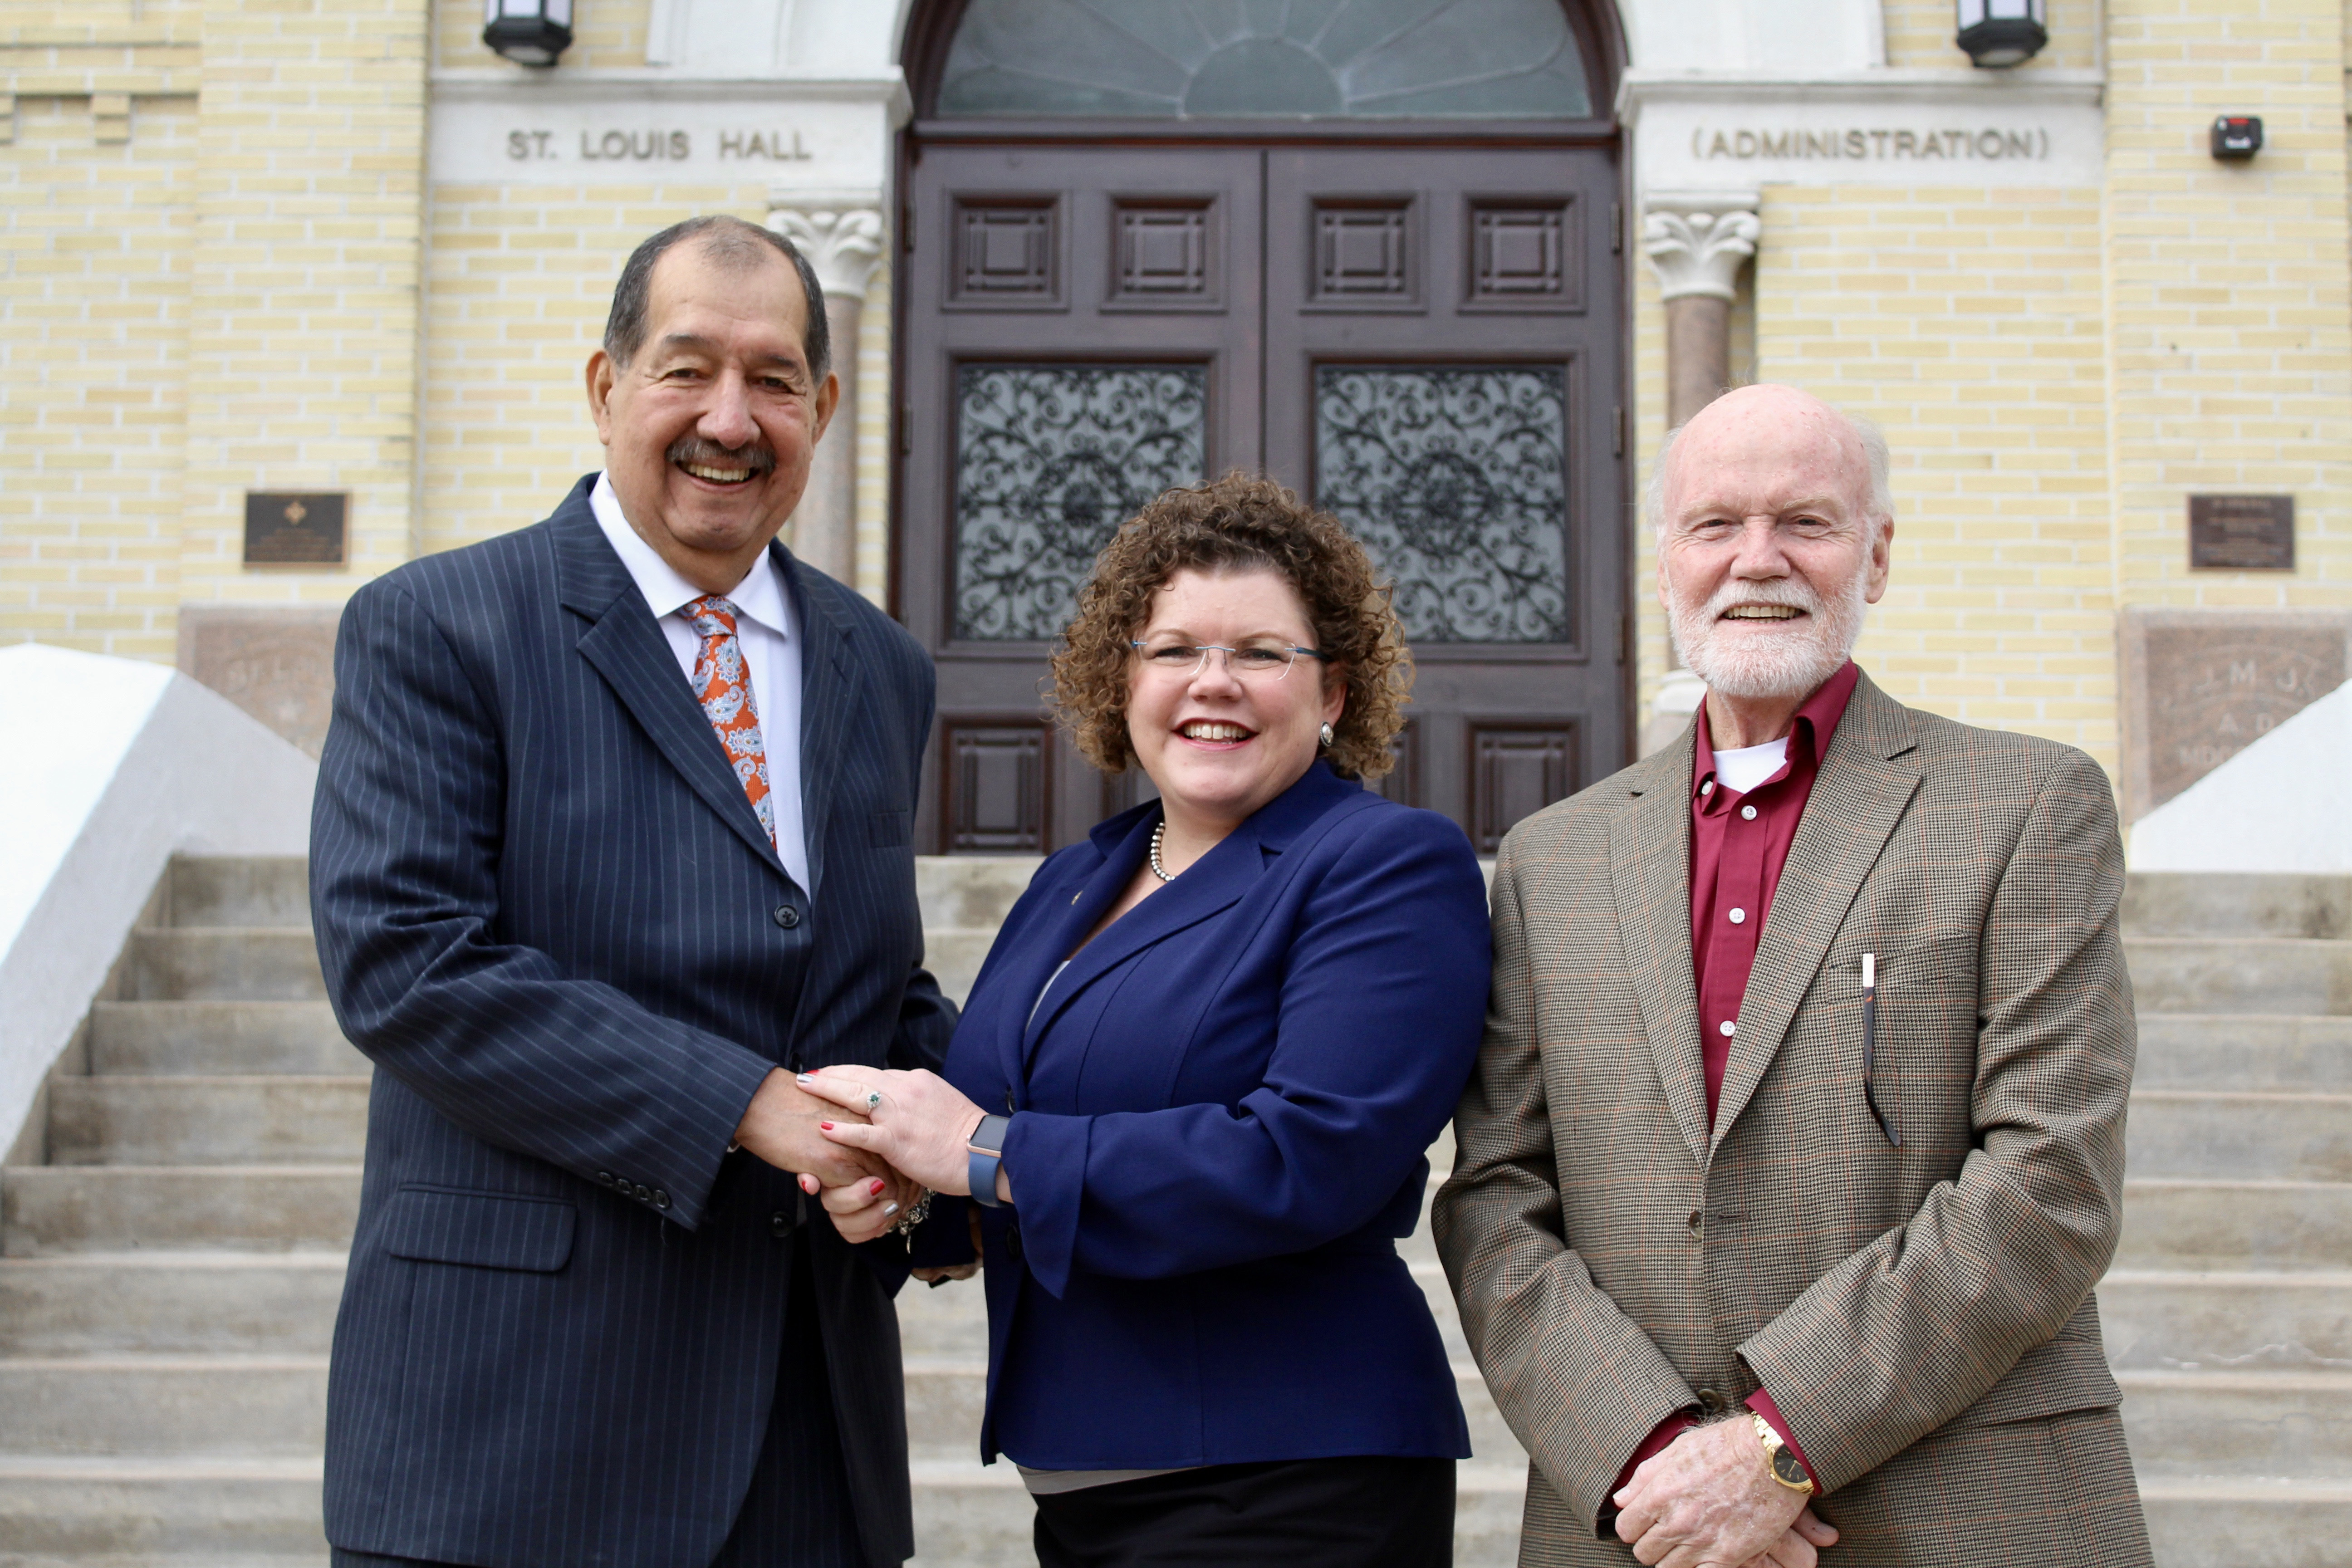 NHI founder and president Ernesto Nieto with St. Mary's University Vice Provost for Enrollment Management Dr. Rosalind Alderman and Director of Marianist Urban Students Program Bro. Richard Thompson.